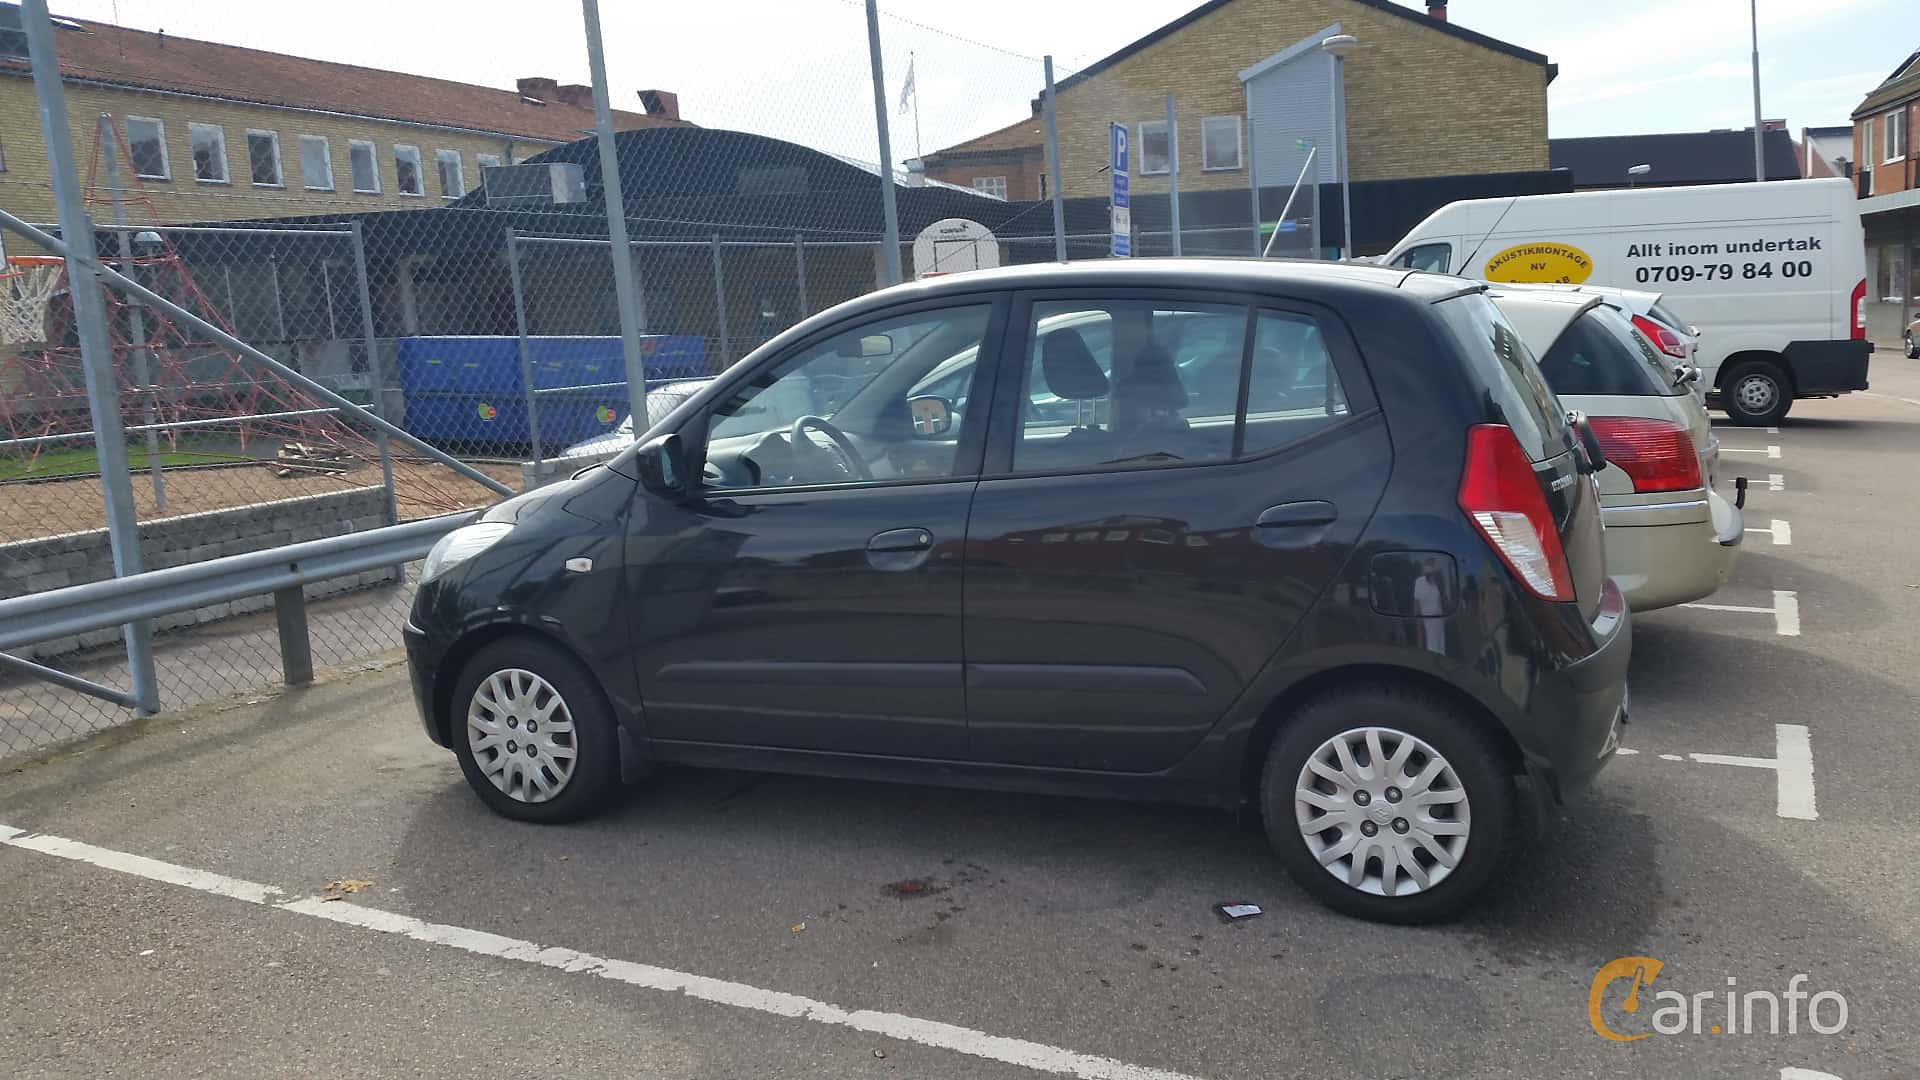 Hyundai i10 generation PA 1 2 Manual, 5-speed